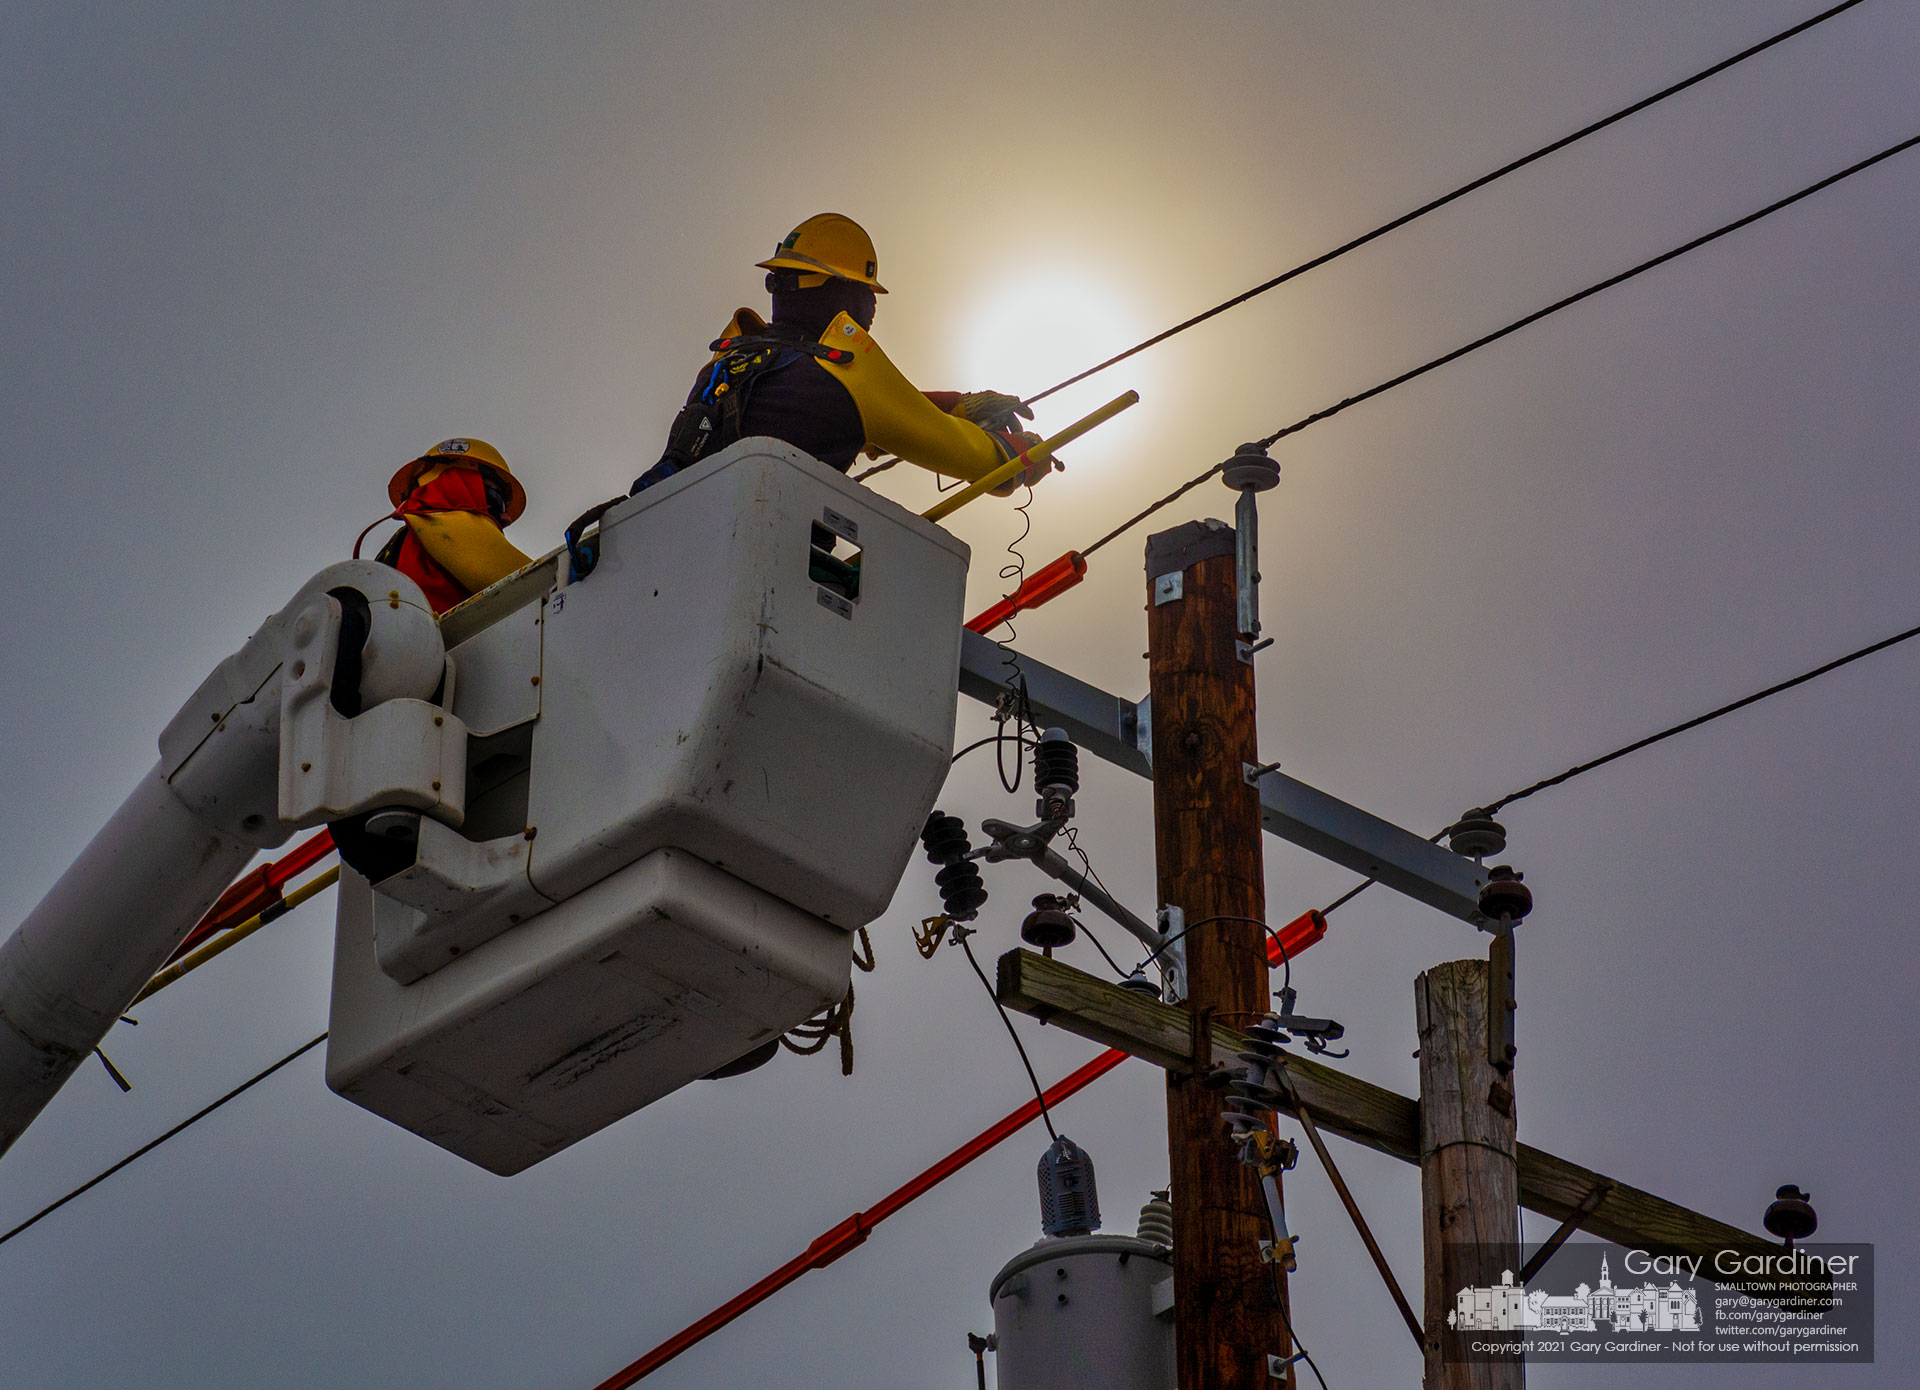 A city electric worker attaches wiring to power lines moved to a new utility pole on North State Street just north of Uptown. My Final Photo for Feb. 11, 2021.